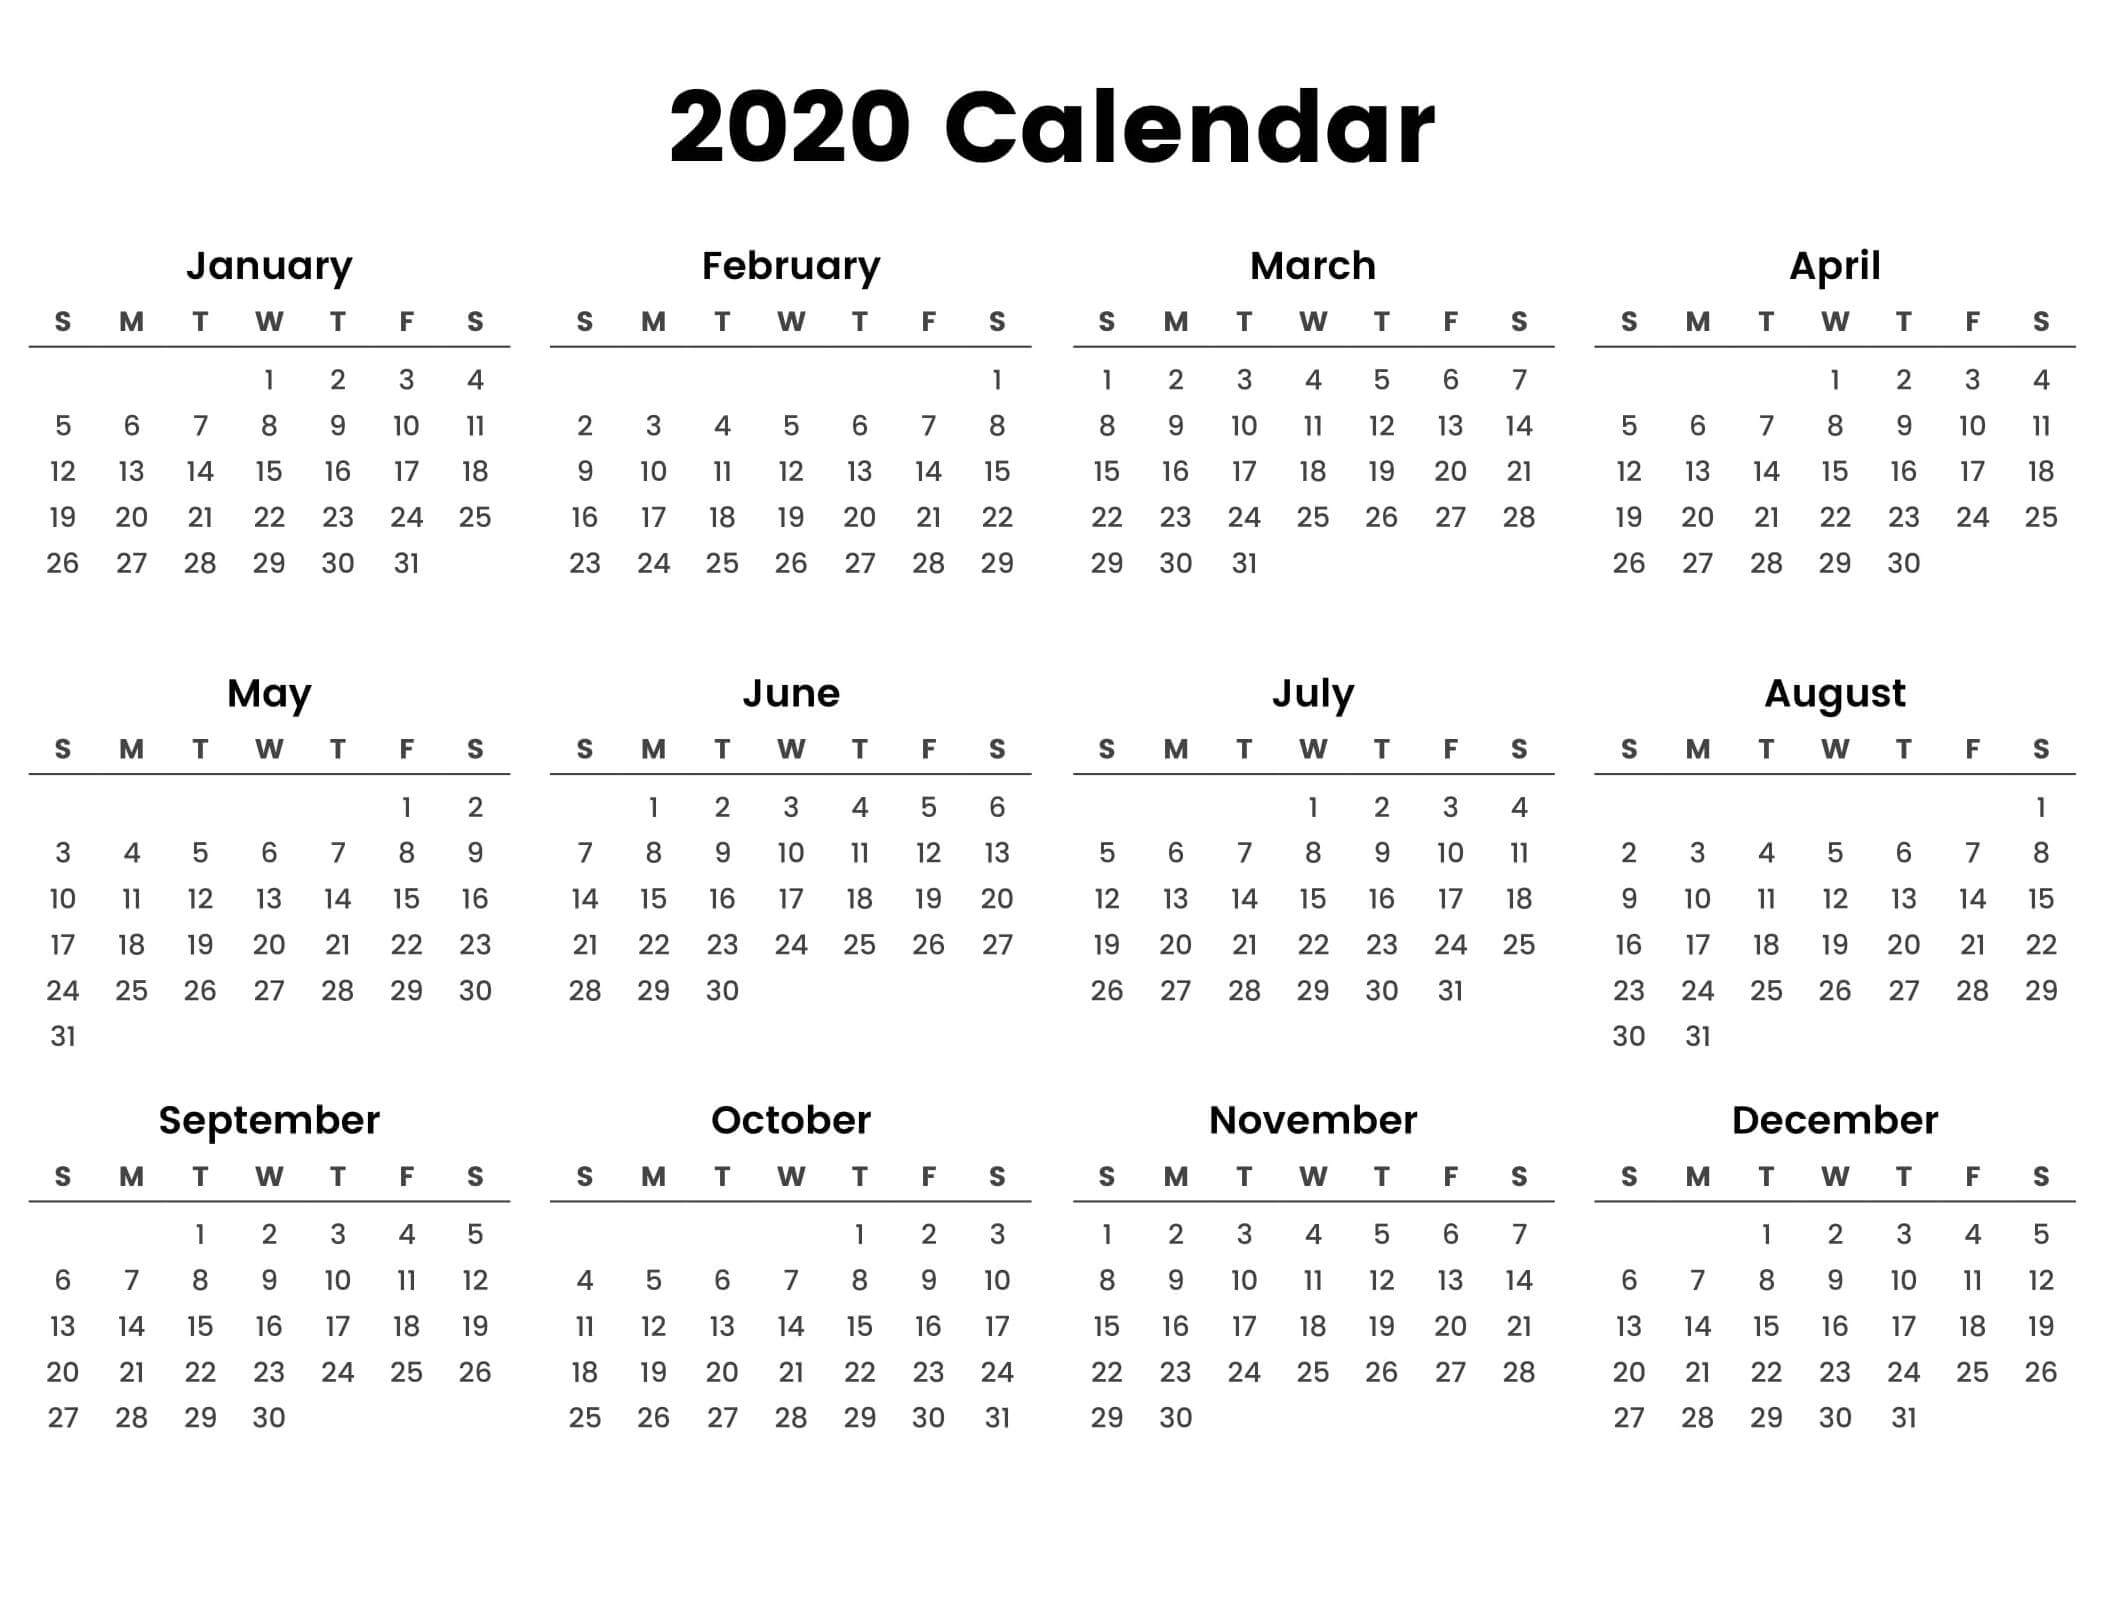 Large Yearly Calendar 2020 With Notes Pdf - Set Your Plan intended for Year At A Glance 2020 Calendar